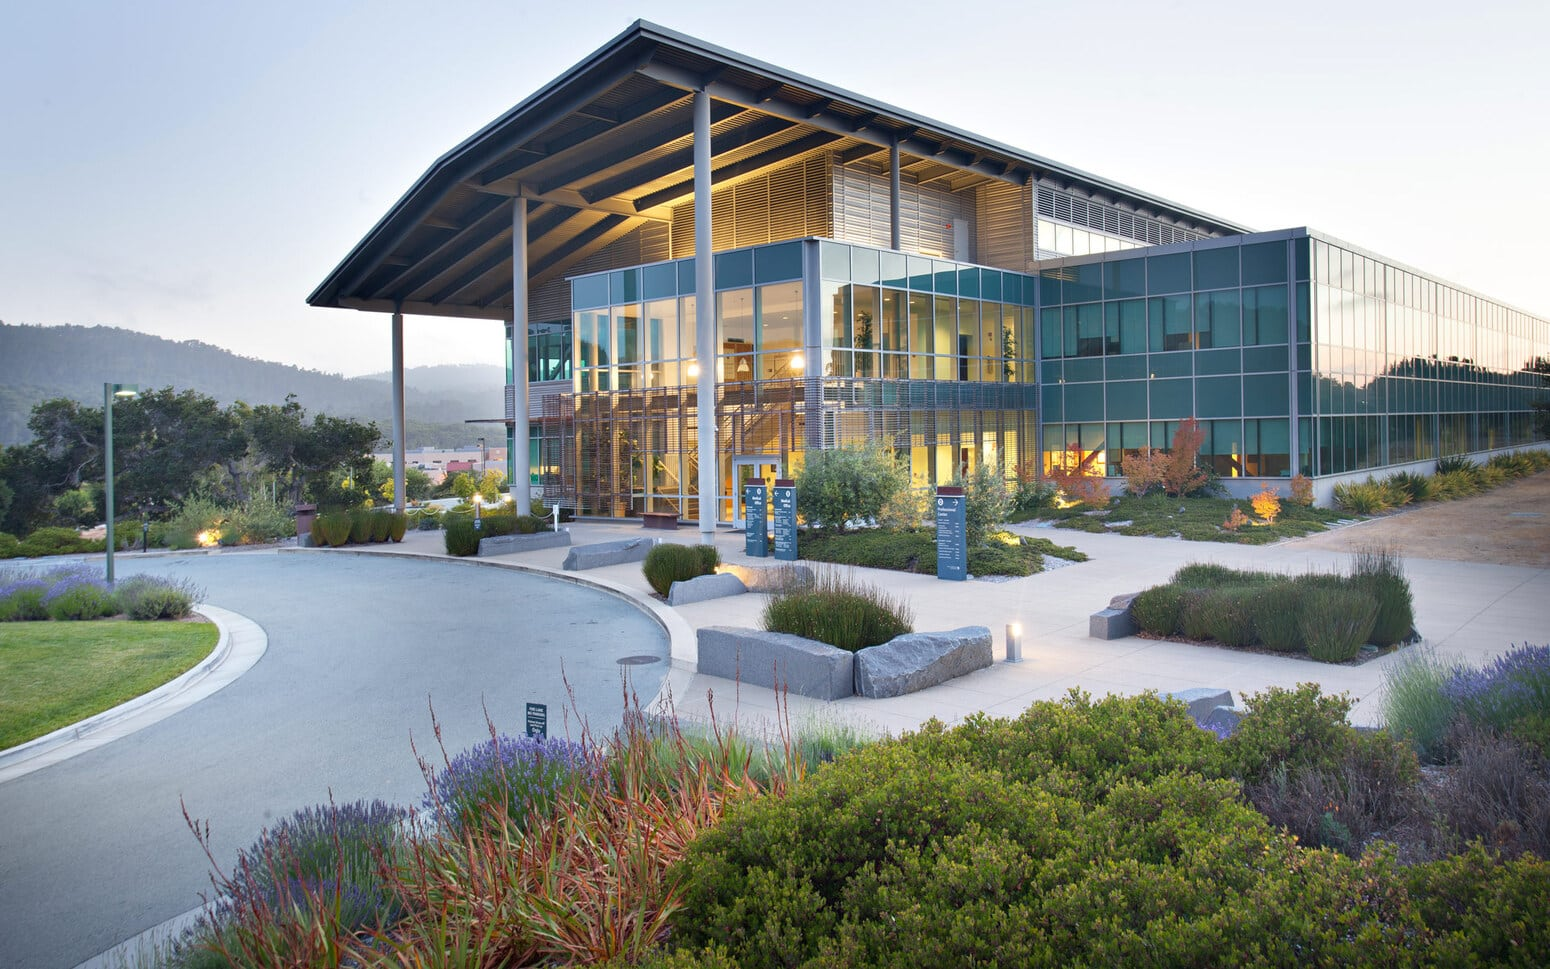 Ryan Ranch Outpatient Campus Center 01